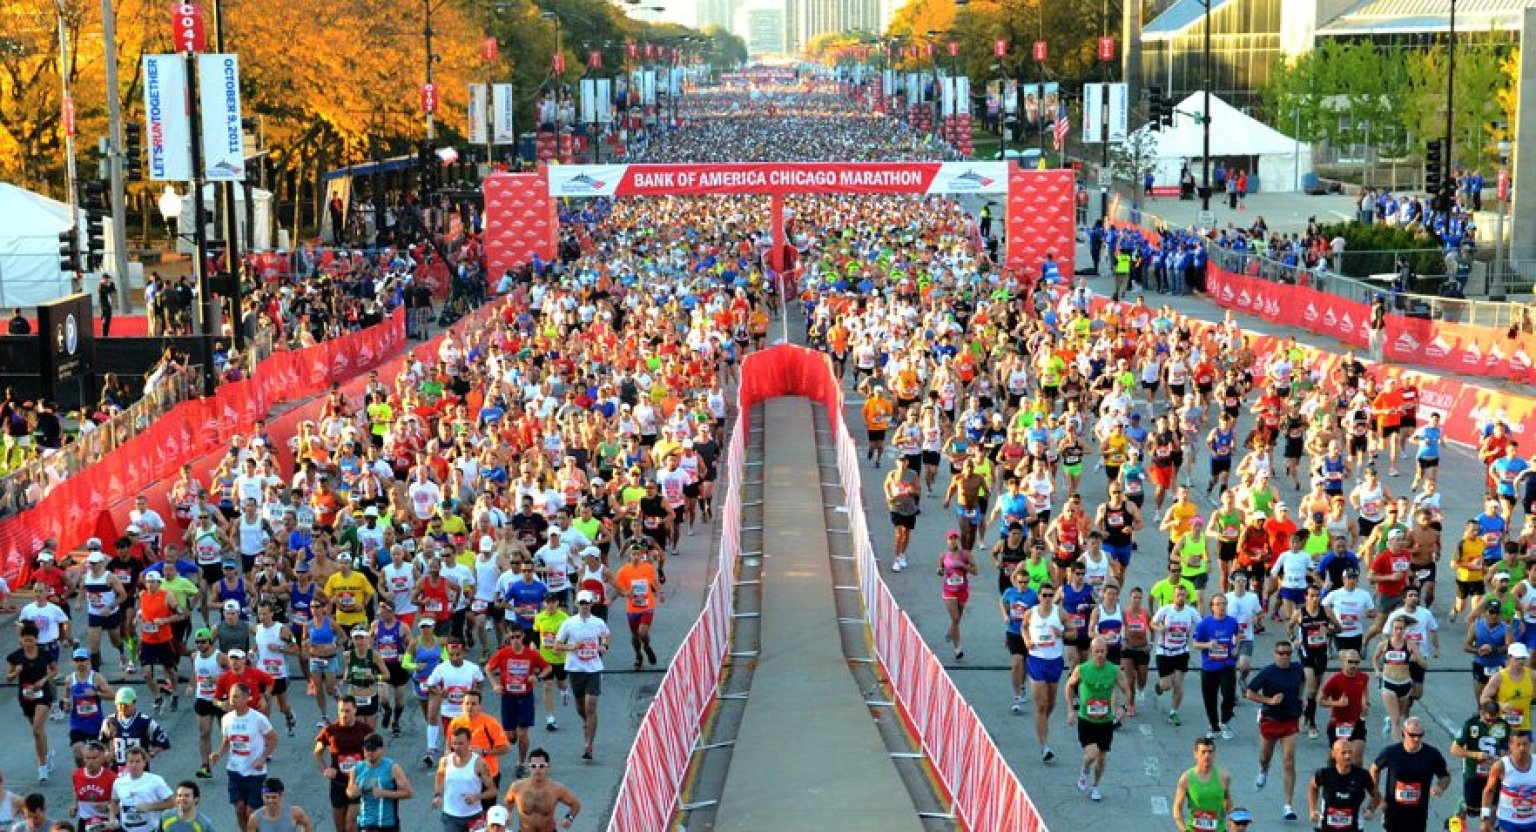 View the Chicago Marathon course elevation chart and description Create course specific Pace Bands Read marathon reviews Compare the Chicago Marathon to other